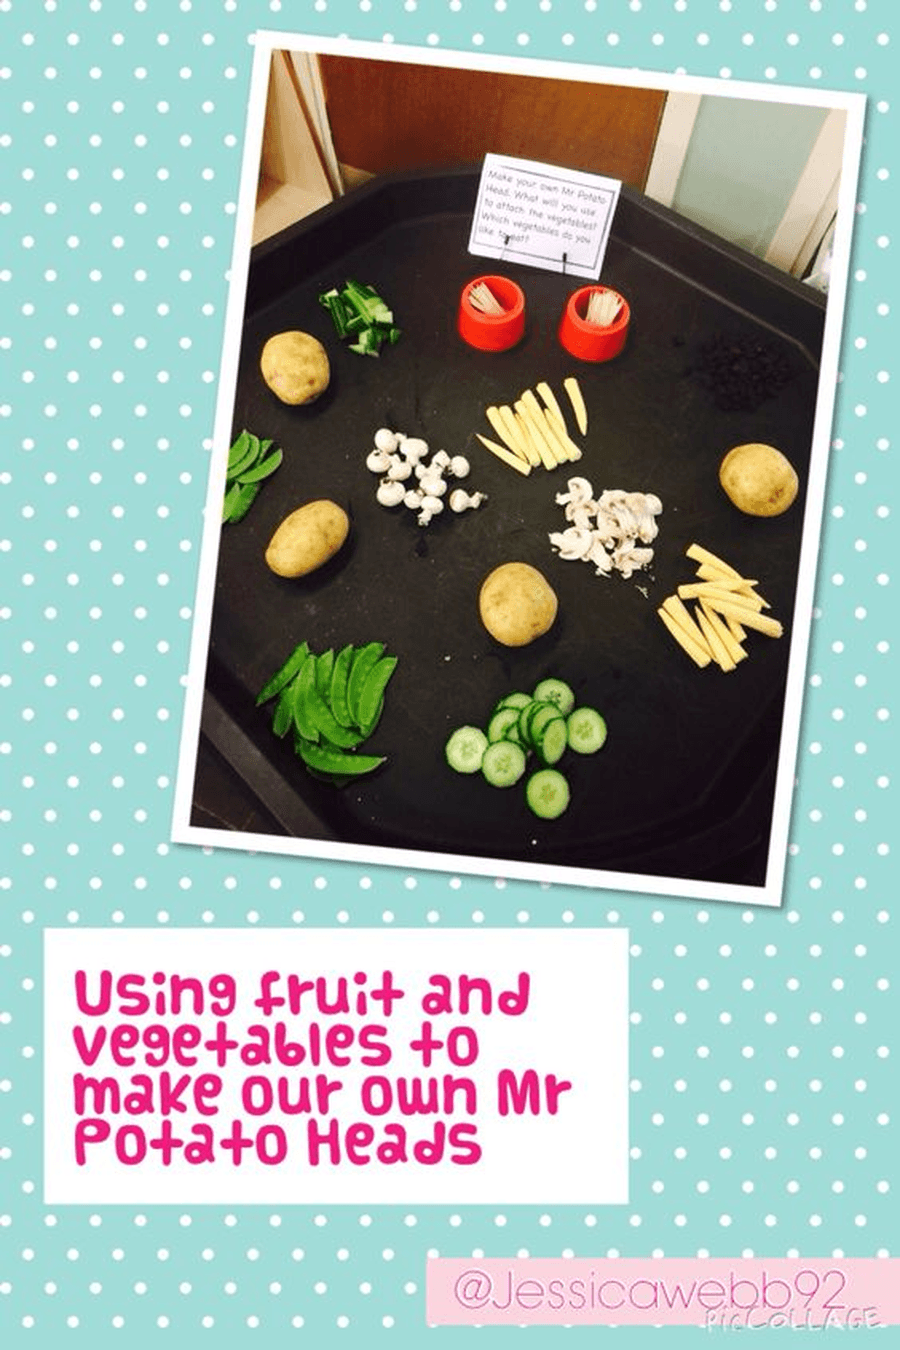 Make your own Mr Potato Heads. What would they say? Can you label him?